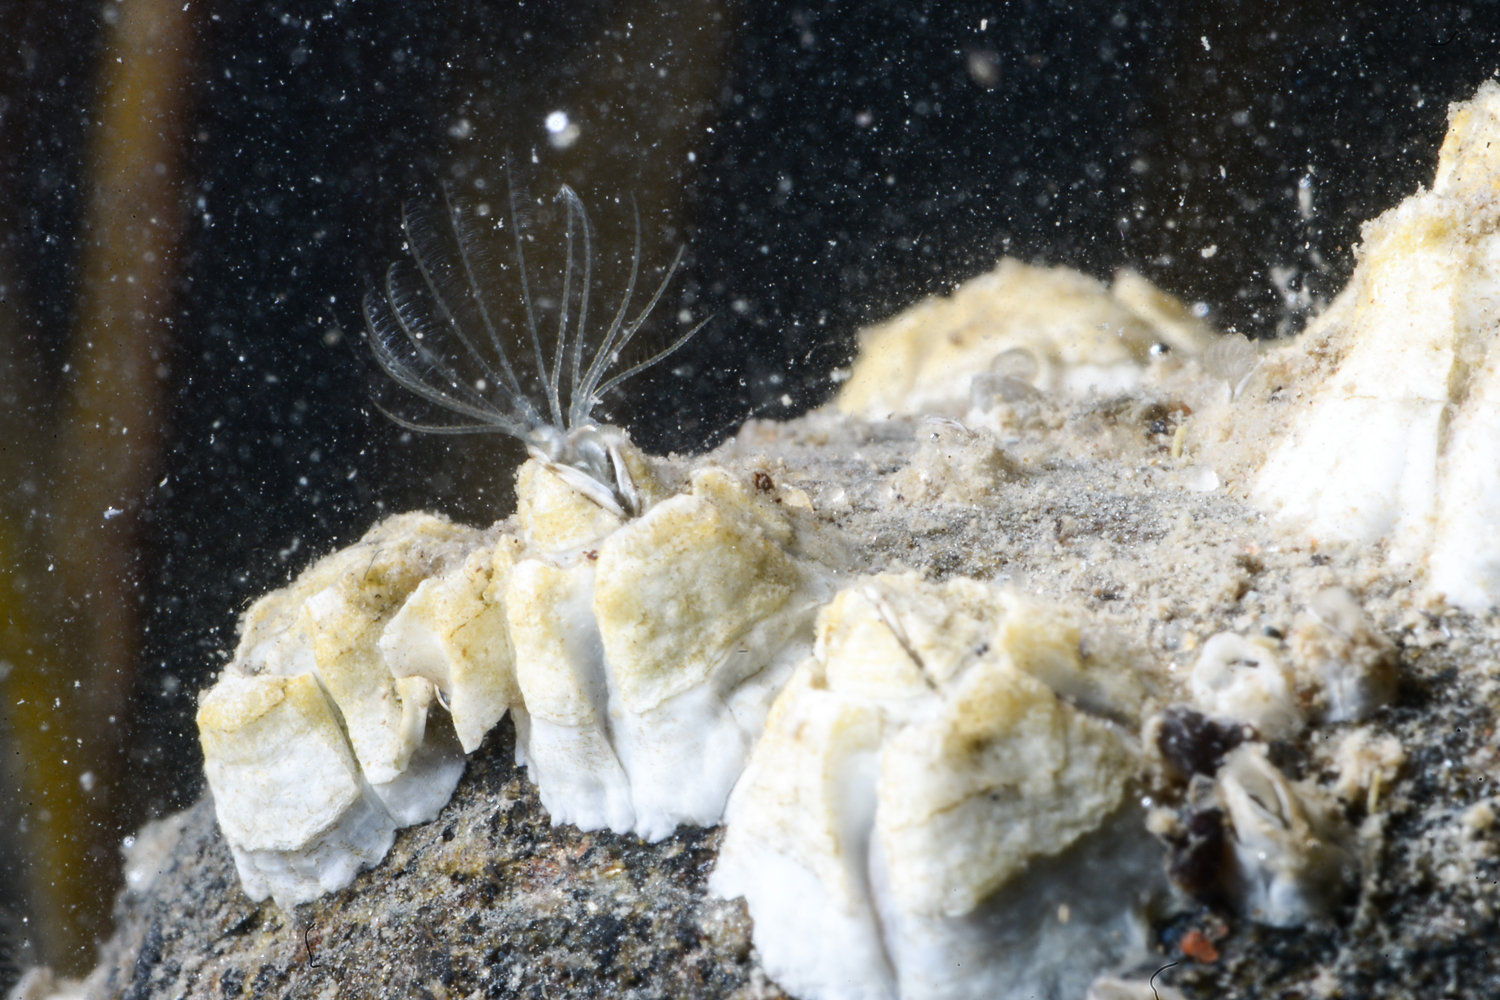 An acorn barnacle, also known as a balanus